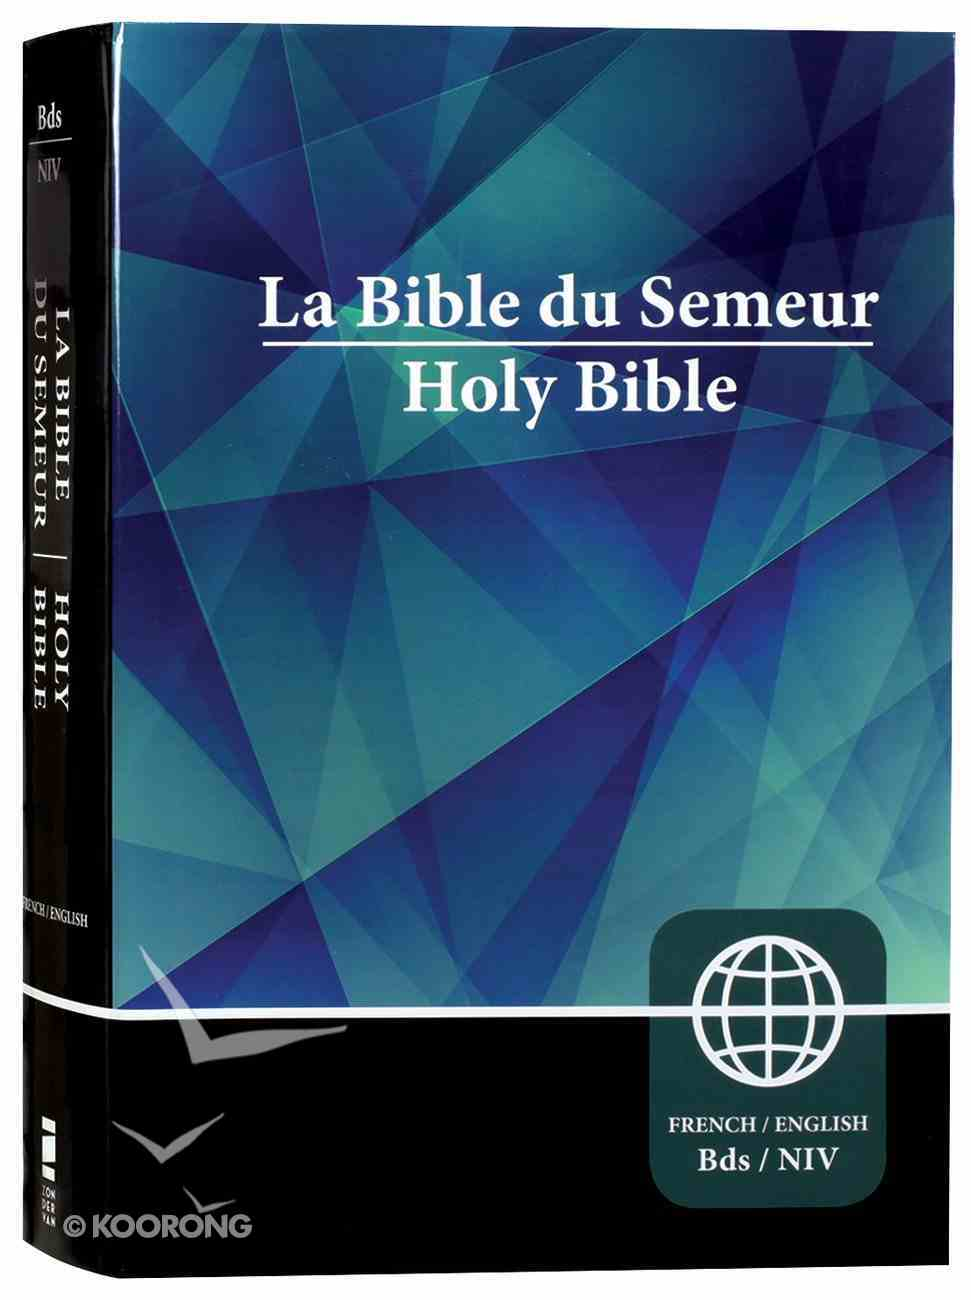 Semeur/Niv French/English Bilingual Bible (Black Letter Edition) Hardback